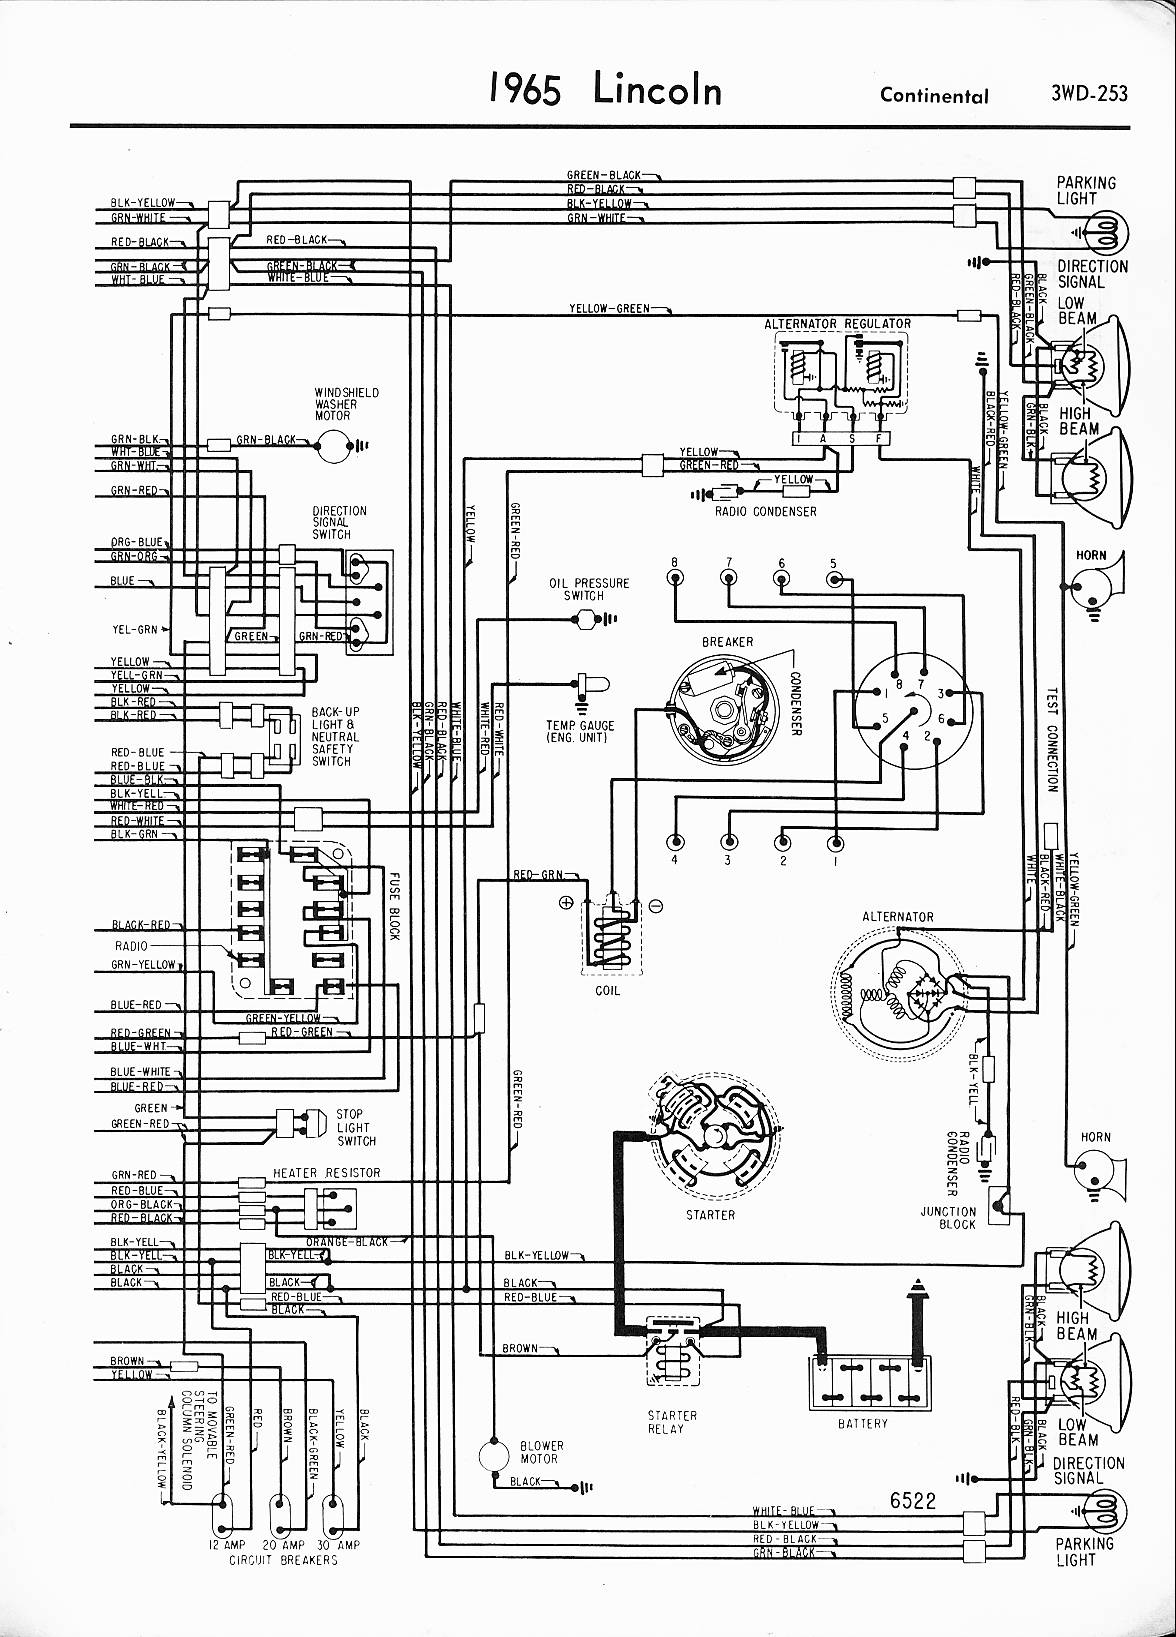 1979 Monte Carlo Wire Diagram Opinions About Wiring 1971 Lincoln Free Engine Image For User Manual Download 1978 1980